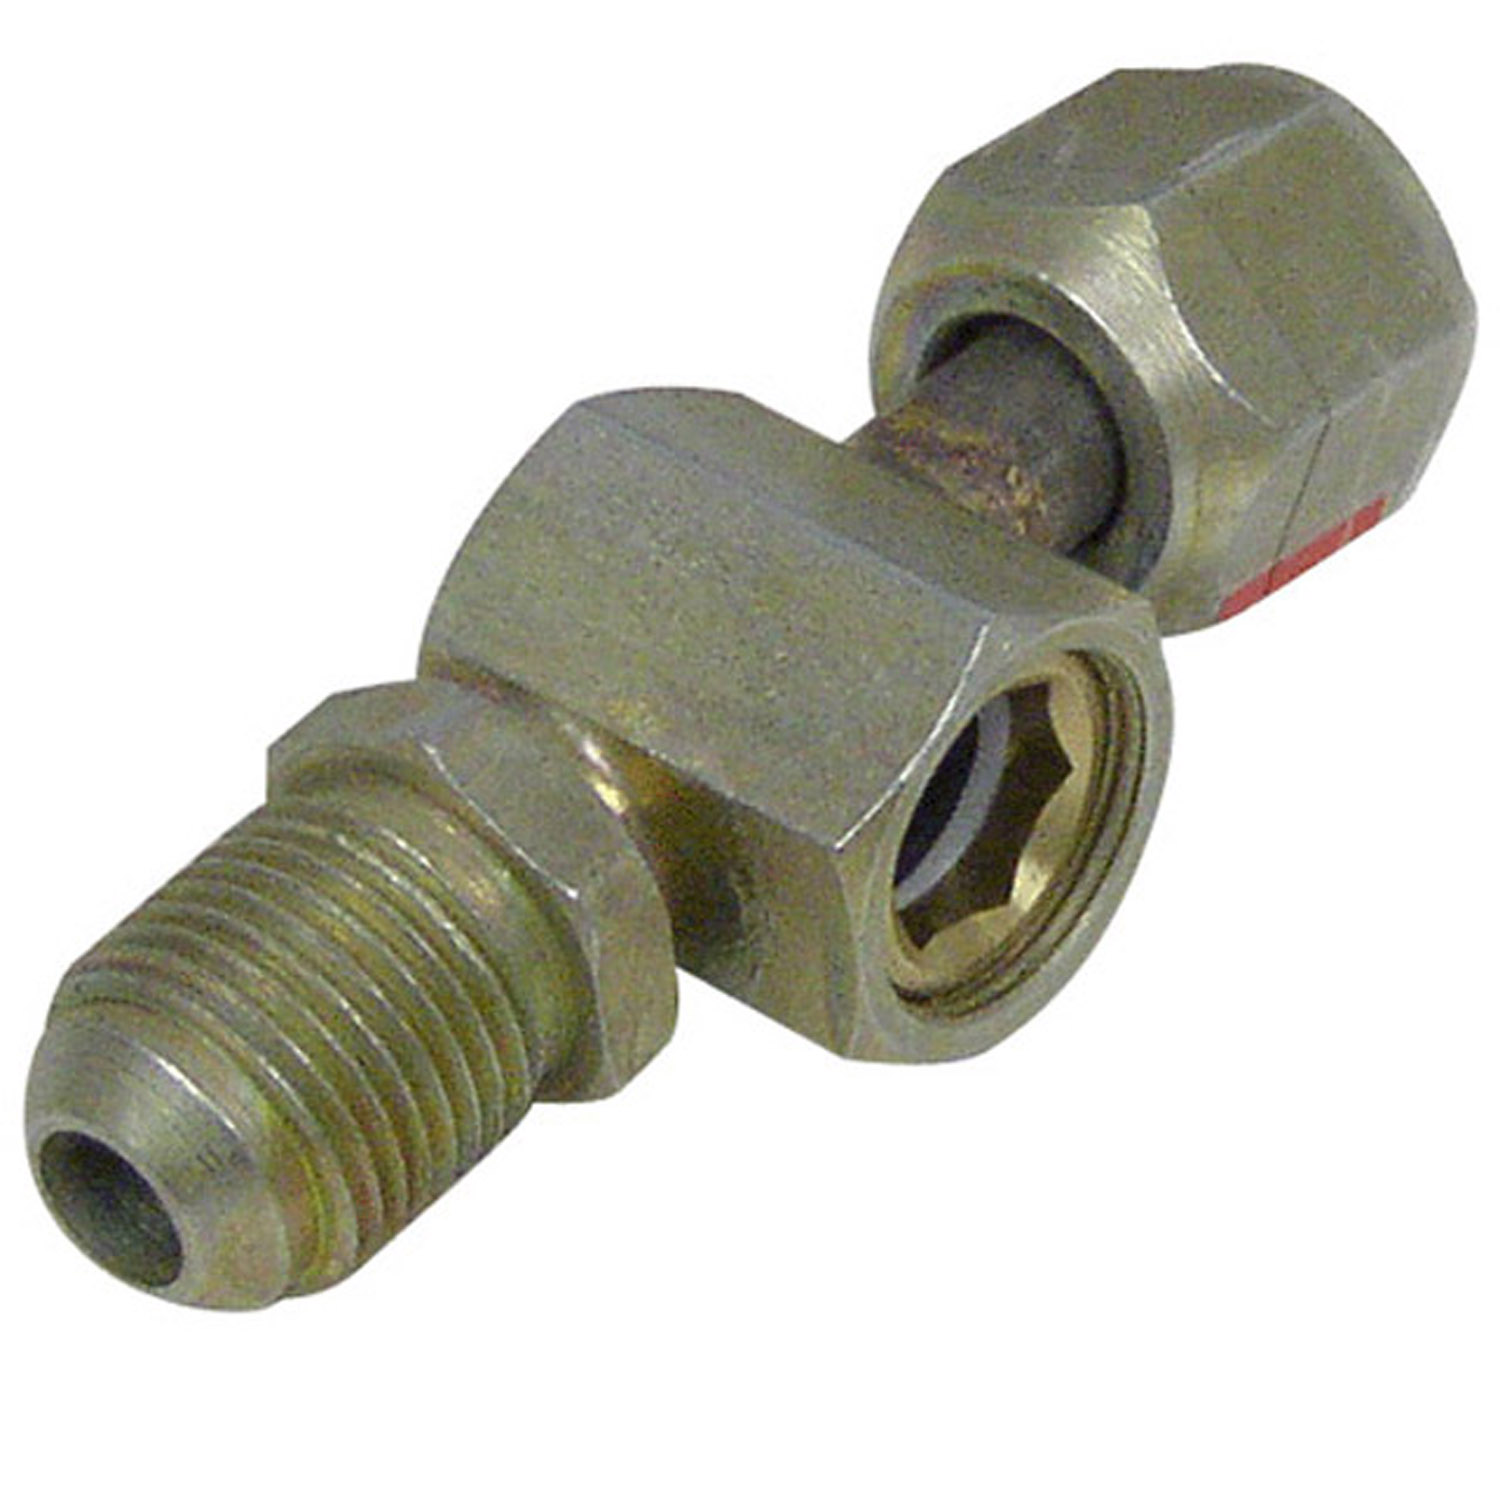 FT 2670C Adapters